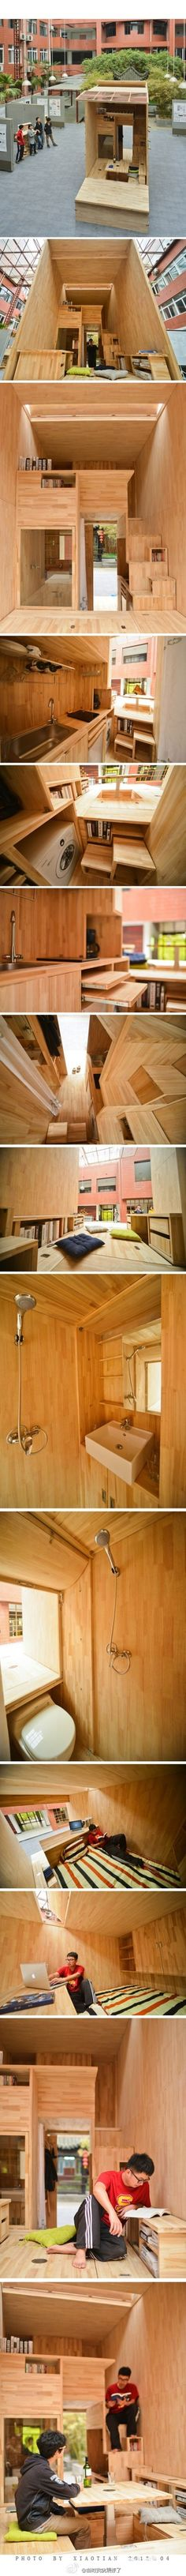 Student designed this AMAZING 75 sf apt. Includes bathroom kitchen shower and patio (www.Facebook.com/TinyHousesAustralia)